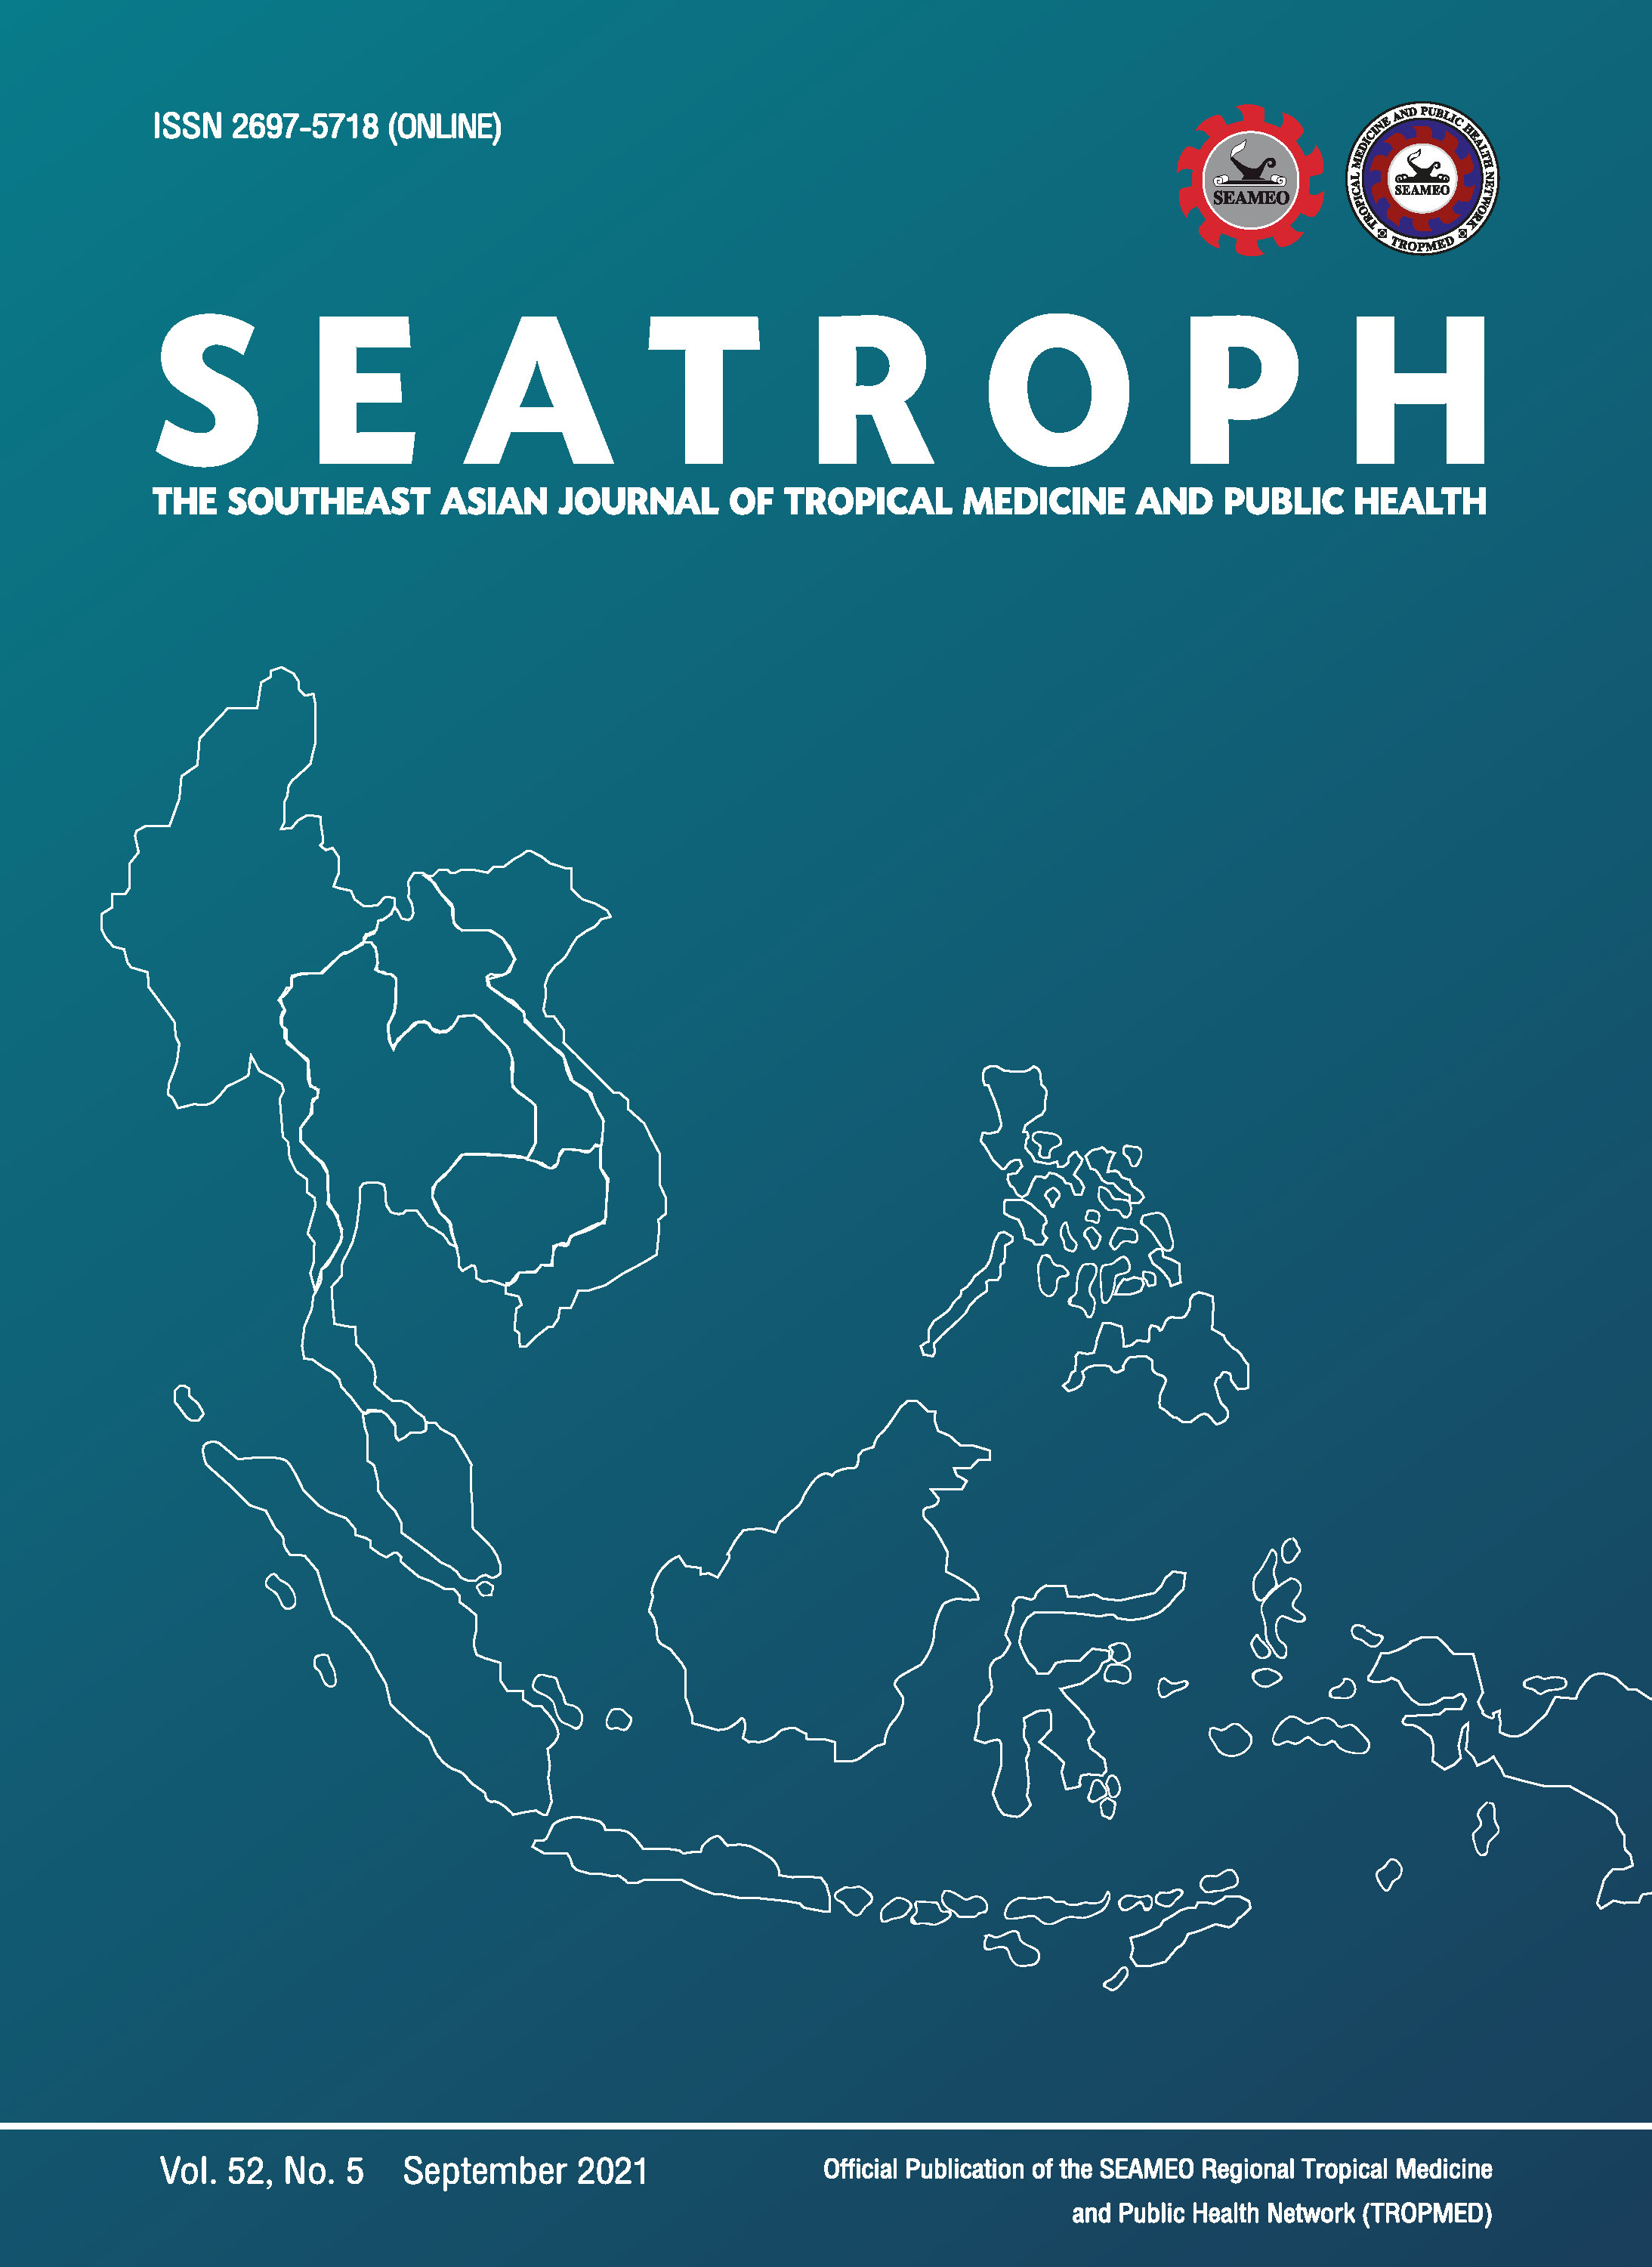 View Vol. 52 No. 5 (2021): THE SOUTHEAST ASIAN JOURNAL OF TROPICAL MEDICINE AND PUBLIC HEALTH